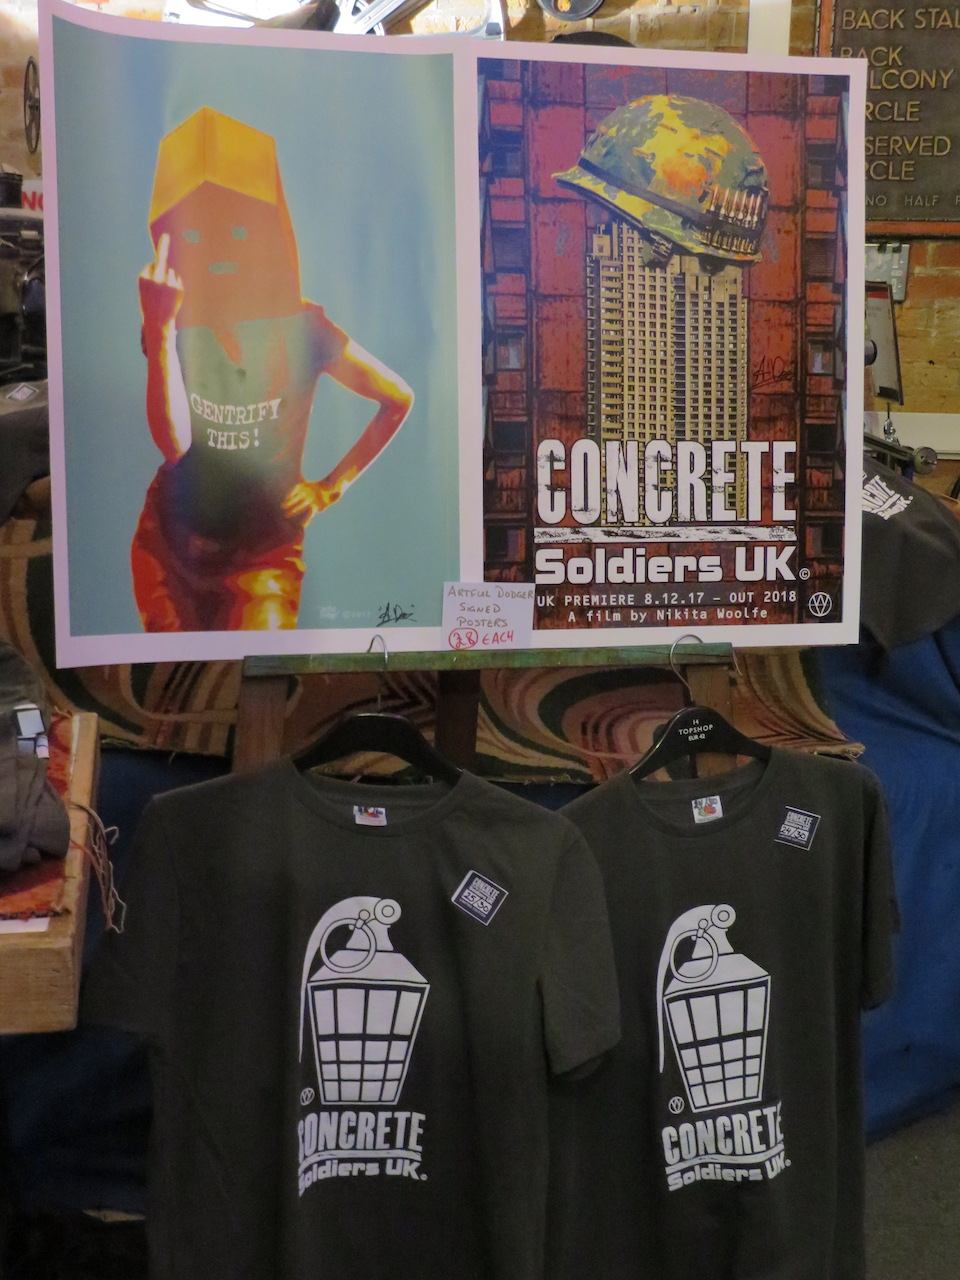 Merchandise - posters and T-shirts, based on designs by artist Artful Dodger - for the documentary film 'Concrete Soldiers UK', which had its world premiere at the Cinema Museum in Kennington, London SE11 on Friday December 8, 2017.